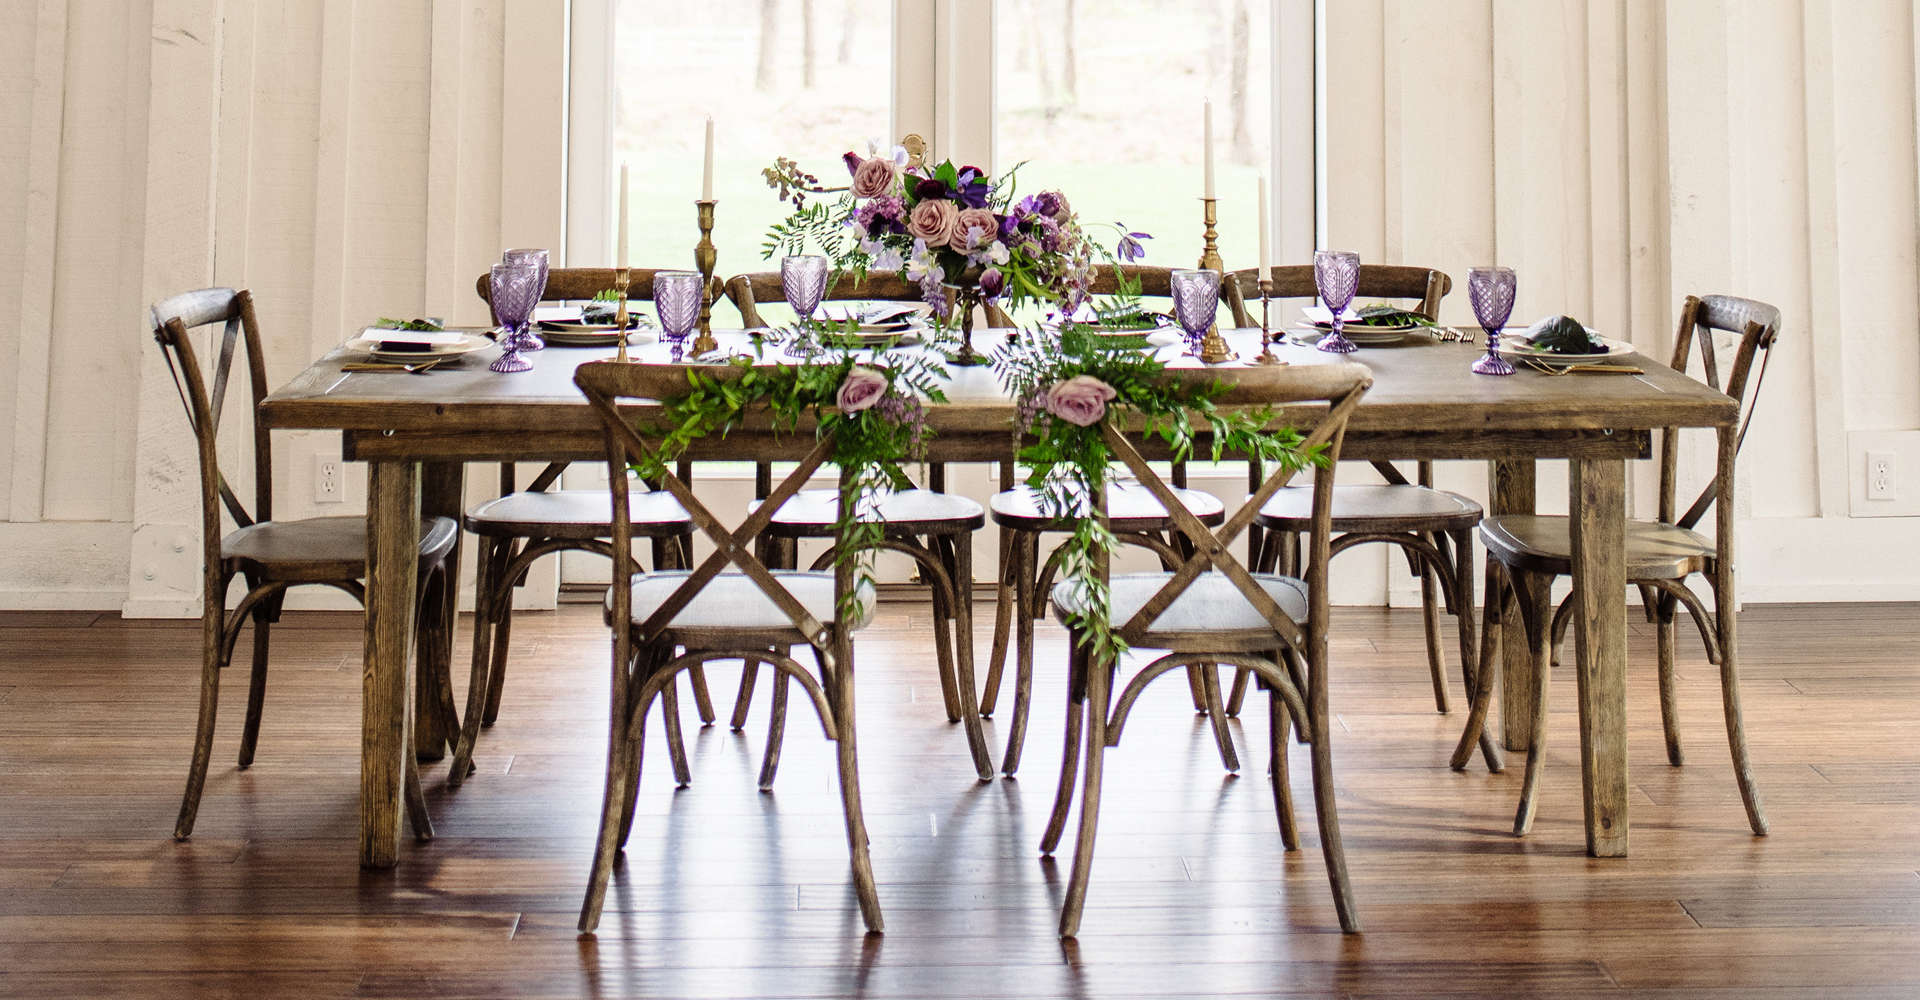 for high and your decorations dream day rentals decor chair quality rent wedding